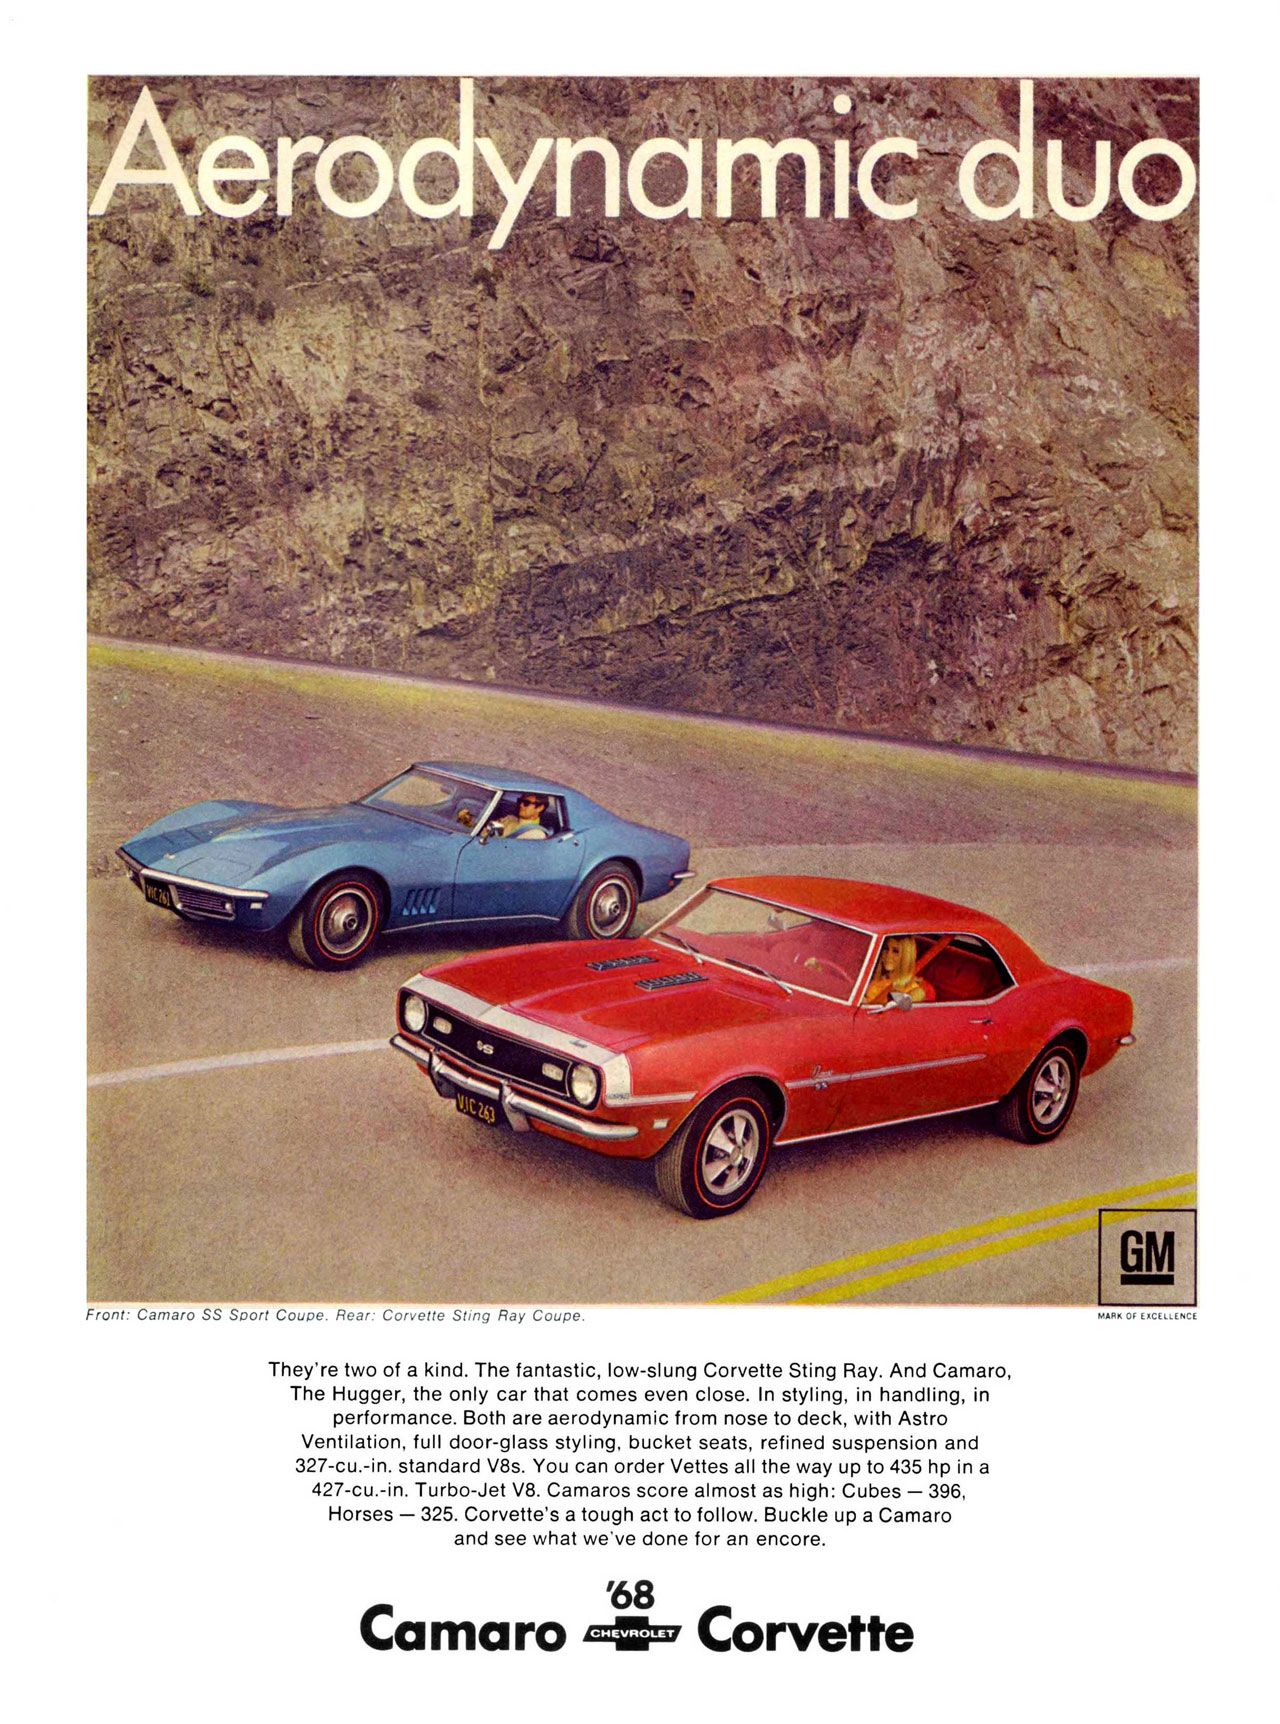 The 1968 Chevrolet Camaro and Corvette models. Aerodynamic duo.